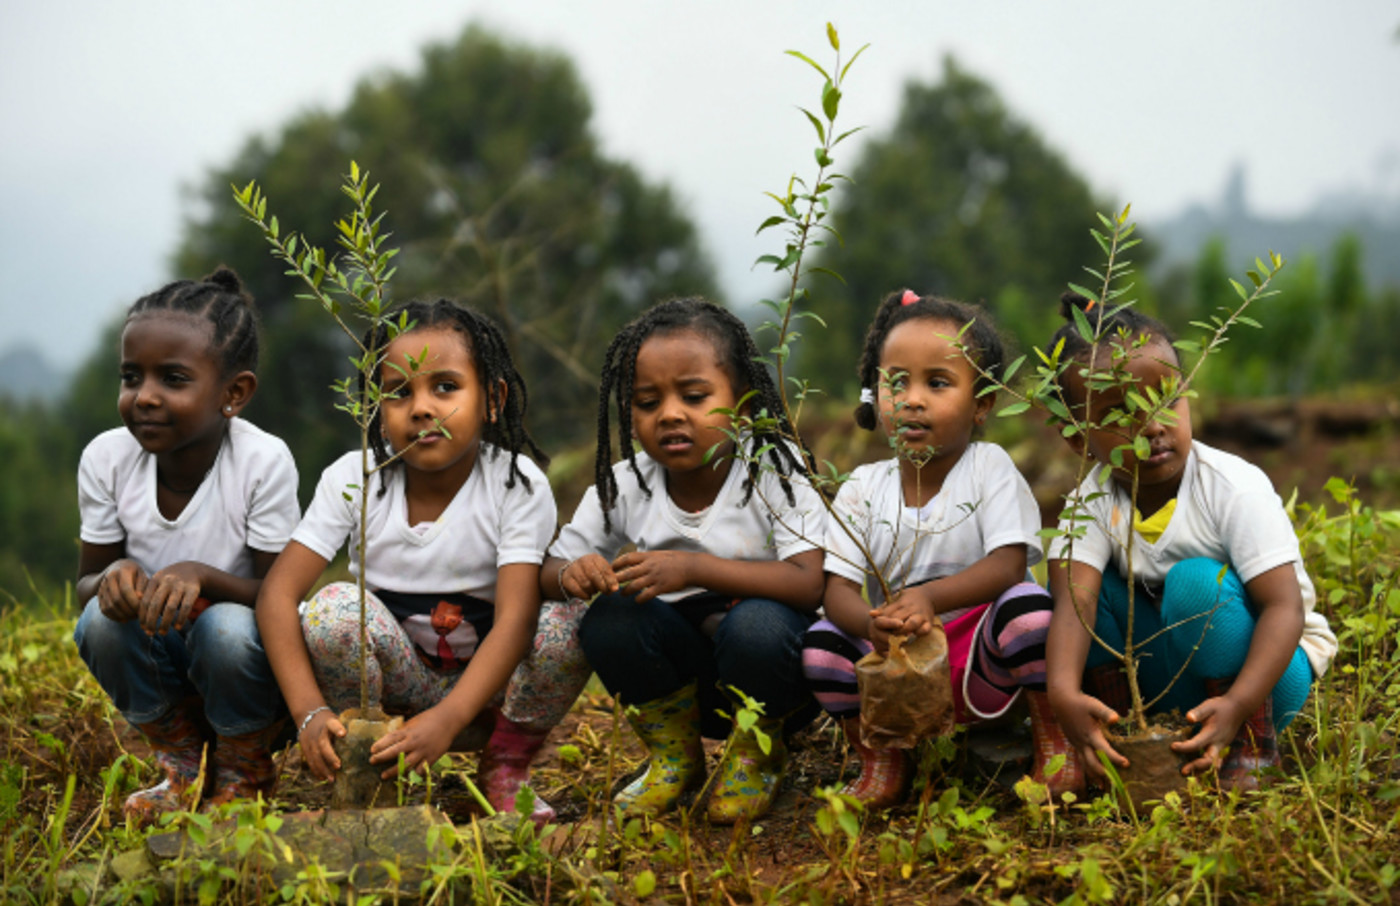 Young ethiopian girls take part in a national tree-planting drive